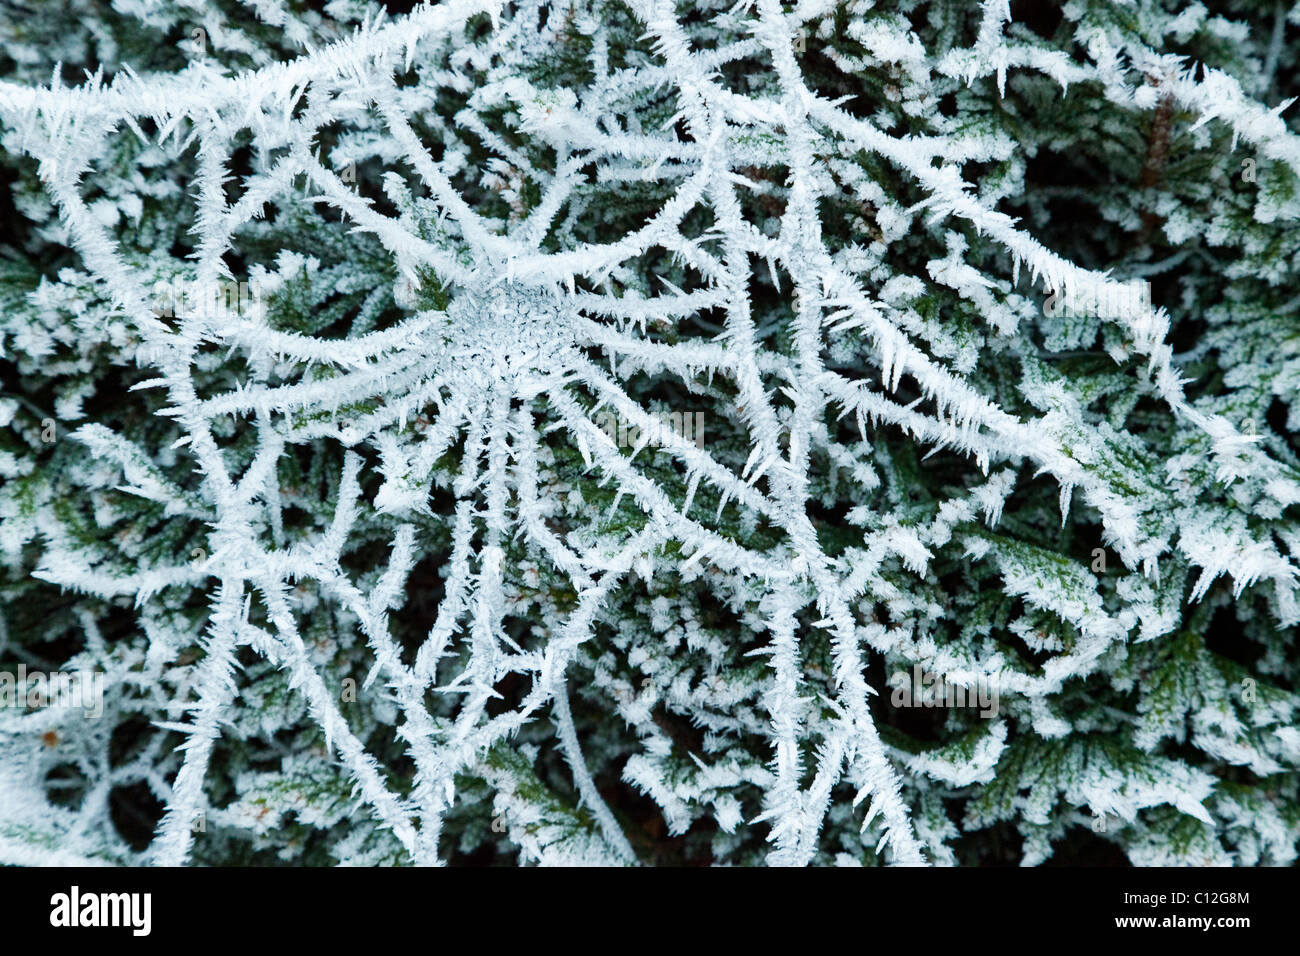 frosted cobweb in winter - Stock Image